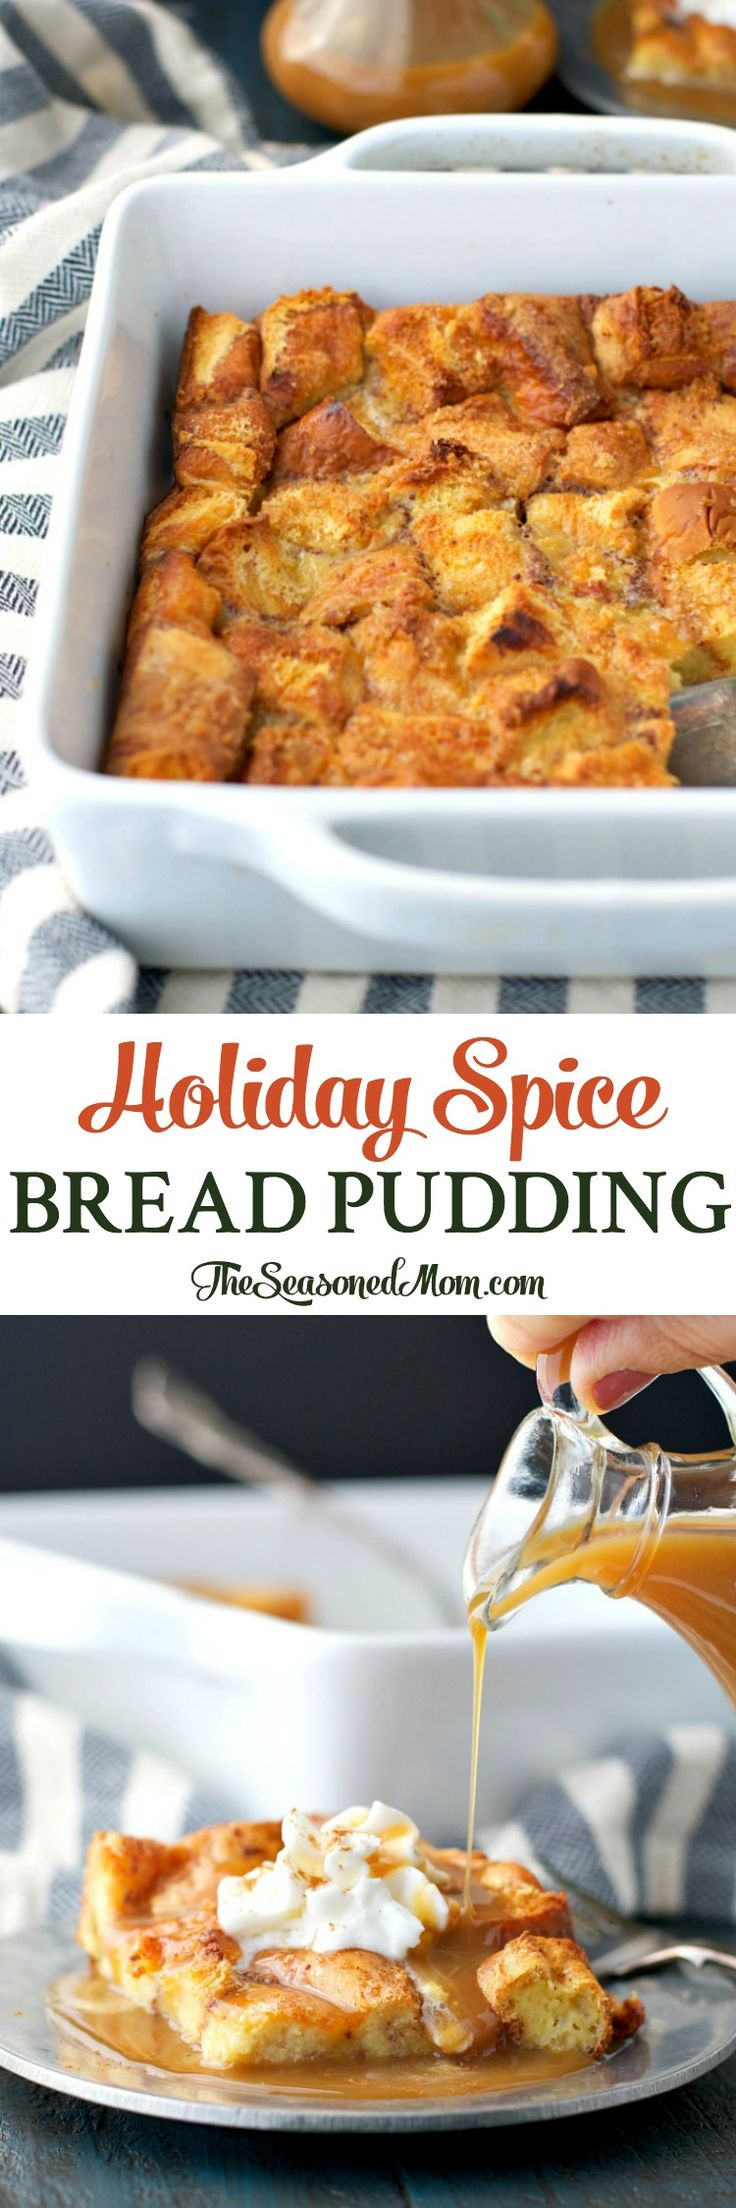 Holiday Spice Bread Pudding is an easy dessert that's ready with only 10 minutes of prep, and it will fill your house with the cozy aroma of the season! #CookbookContest #MorethanaMeal #ad @potatorolls